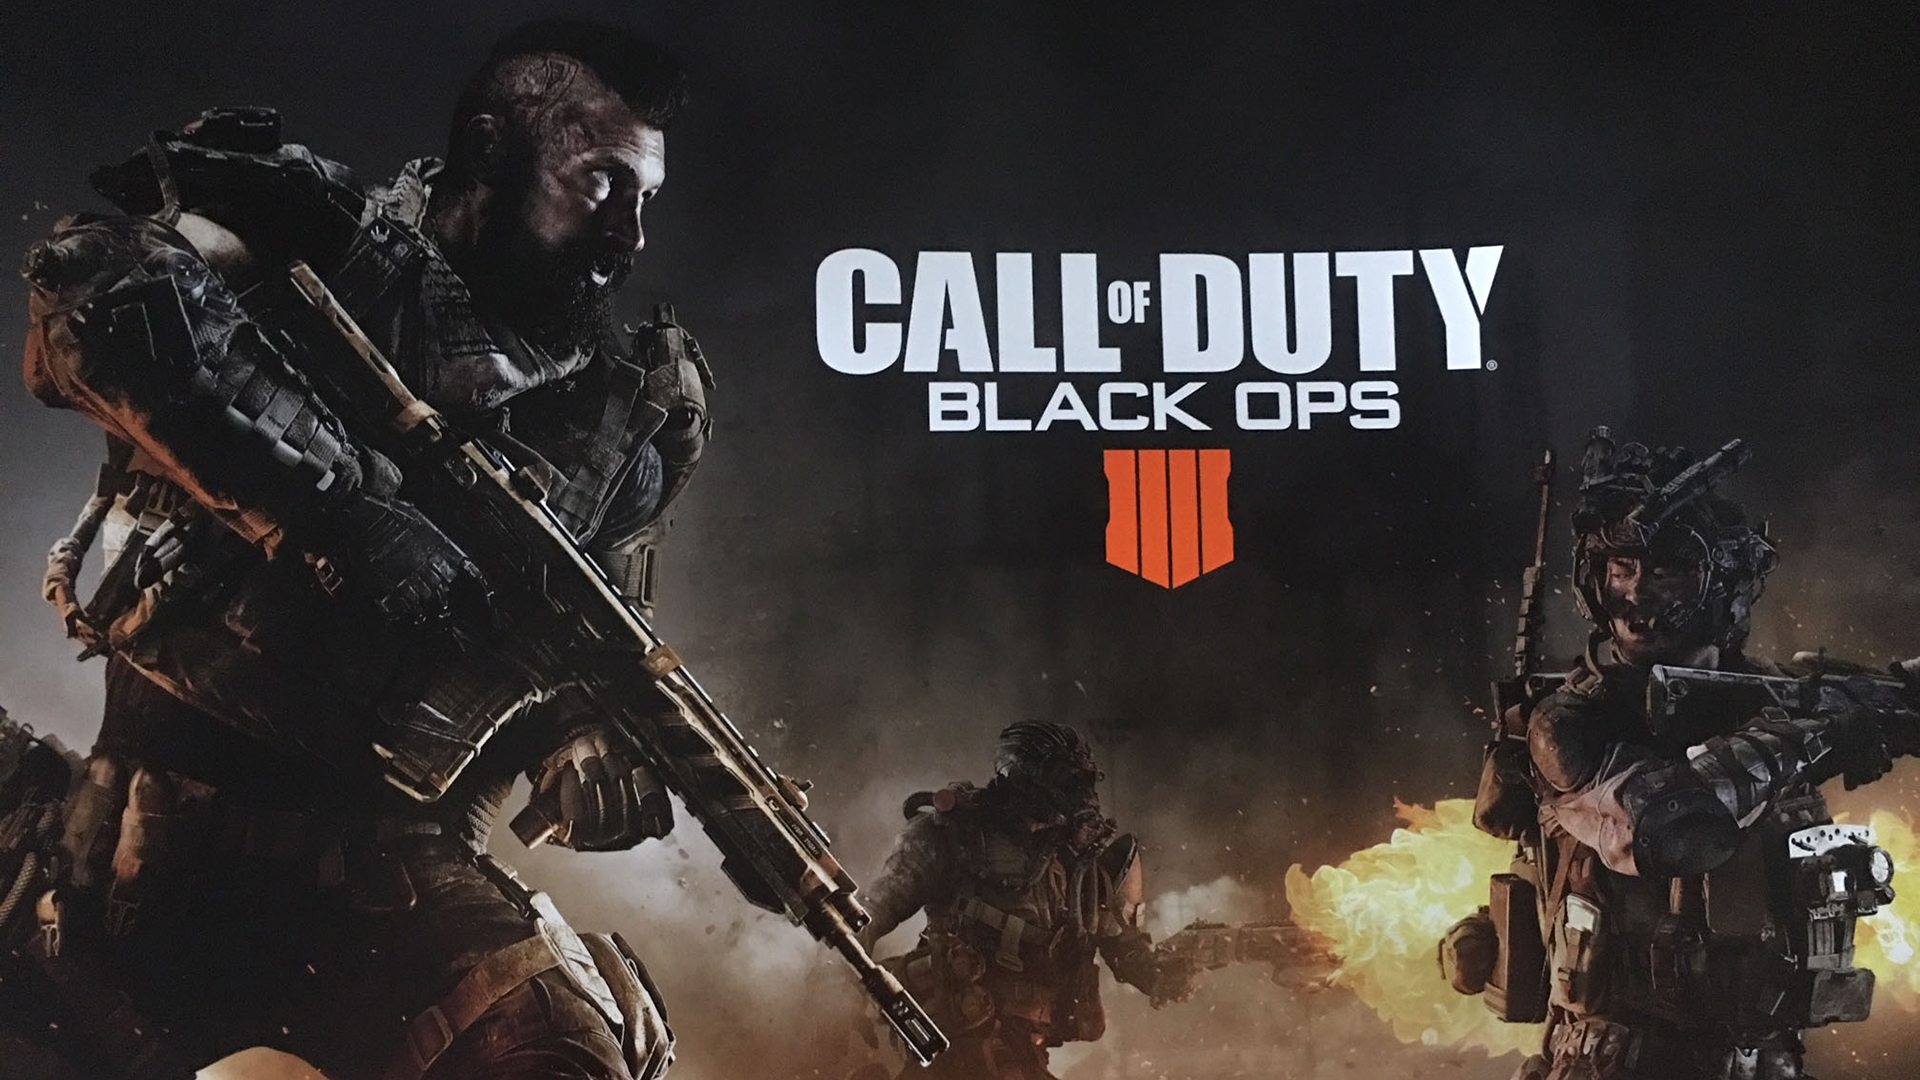 Call Of Duty Black Ops 4 Wallpapers Hd Wallpapers